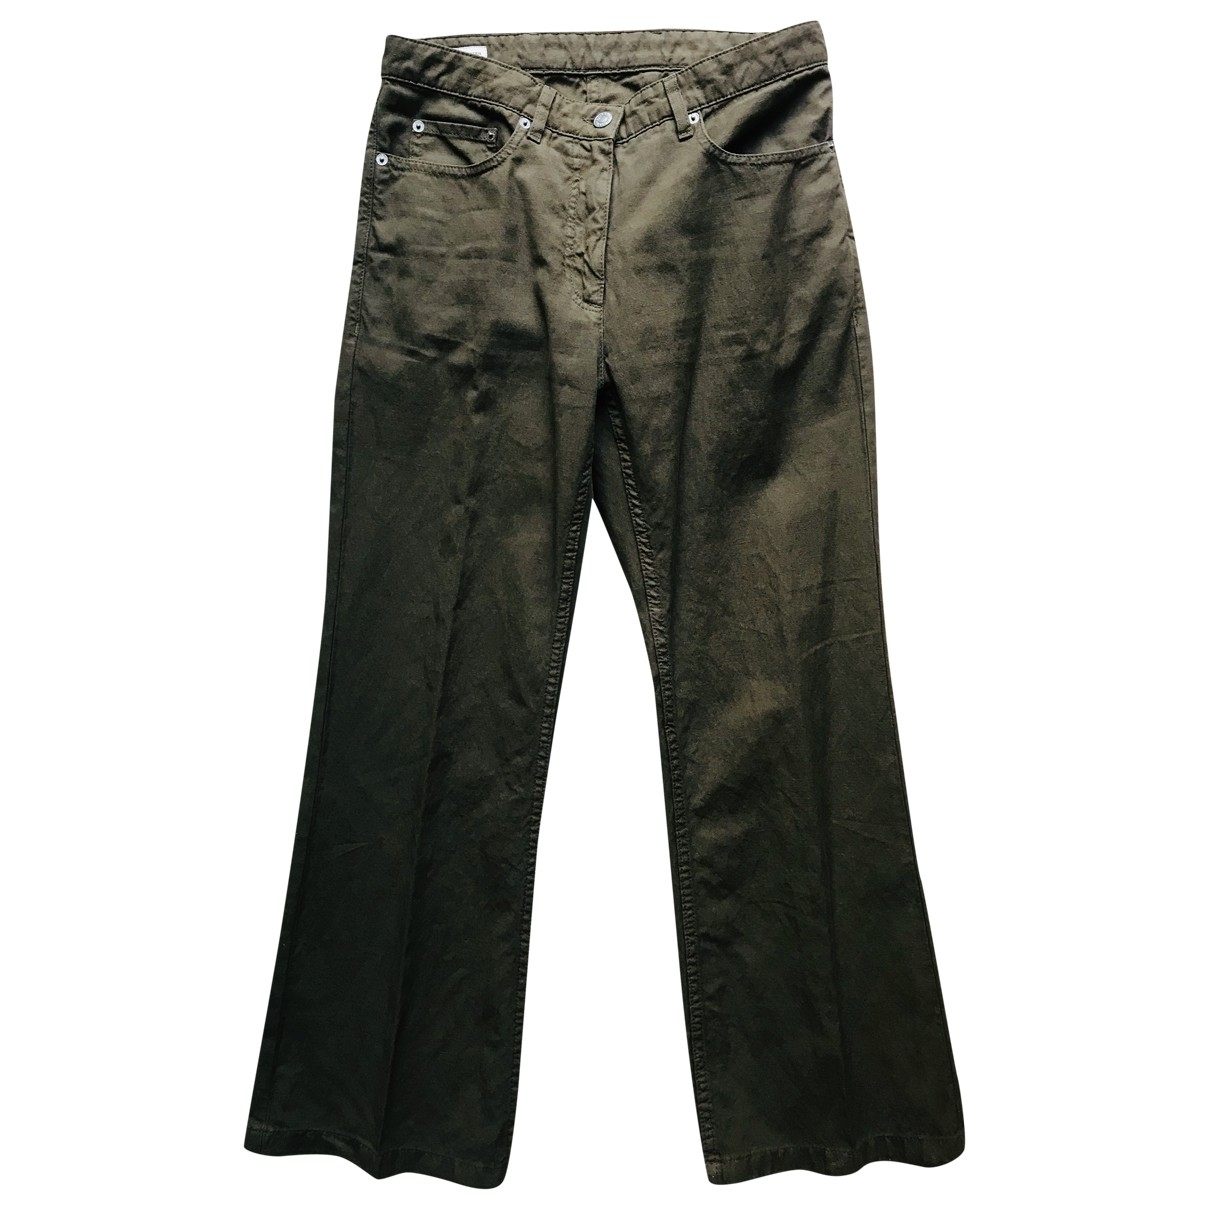 Dries Van Noten \N Khaki Cotton Trousers for Women S International